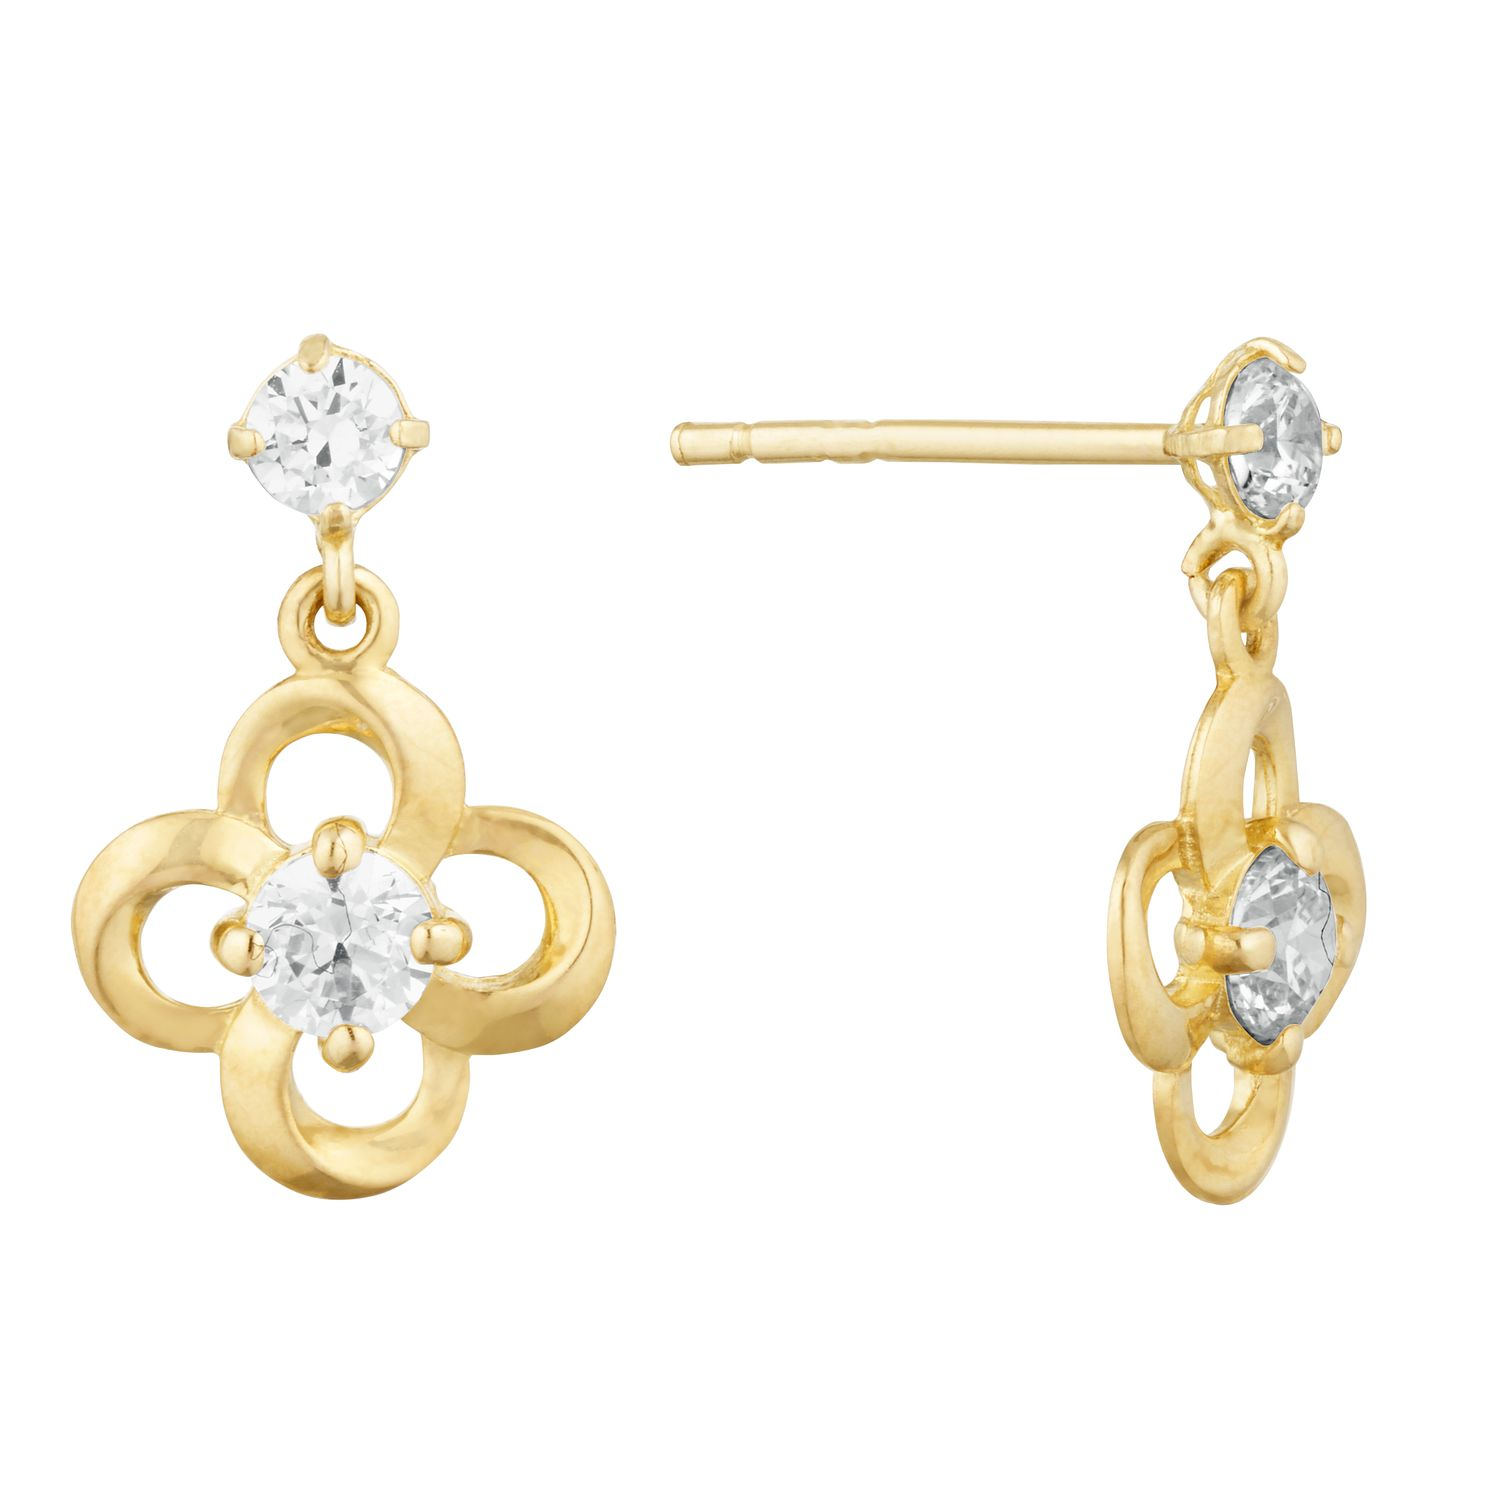 9ct Yellow Gold Cubic Zirconia Flower Drop Earrings - Product number 9736700